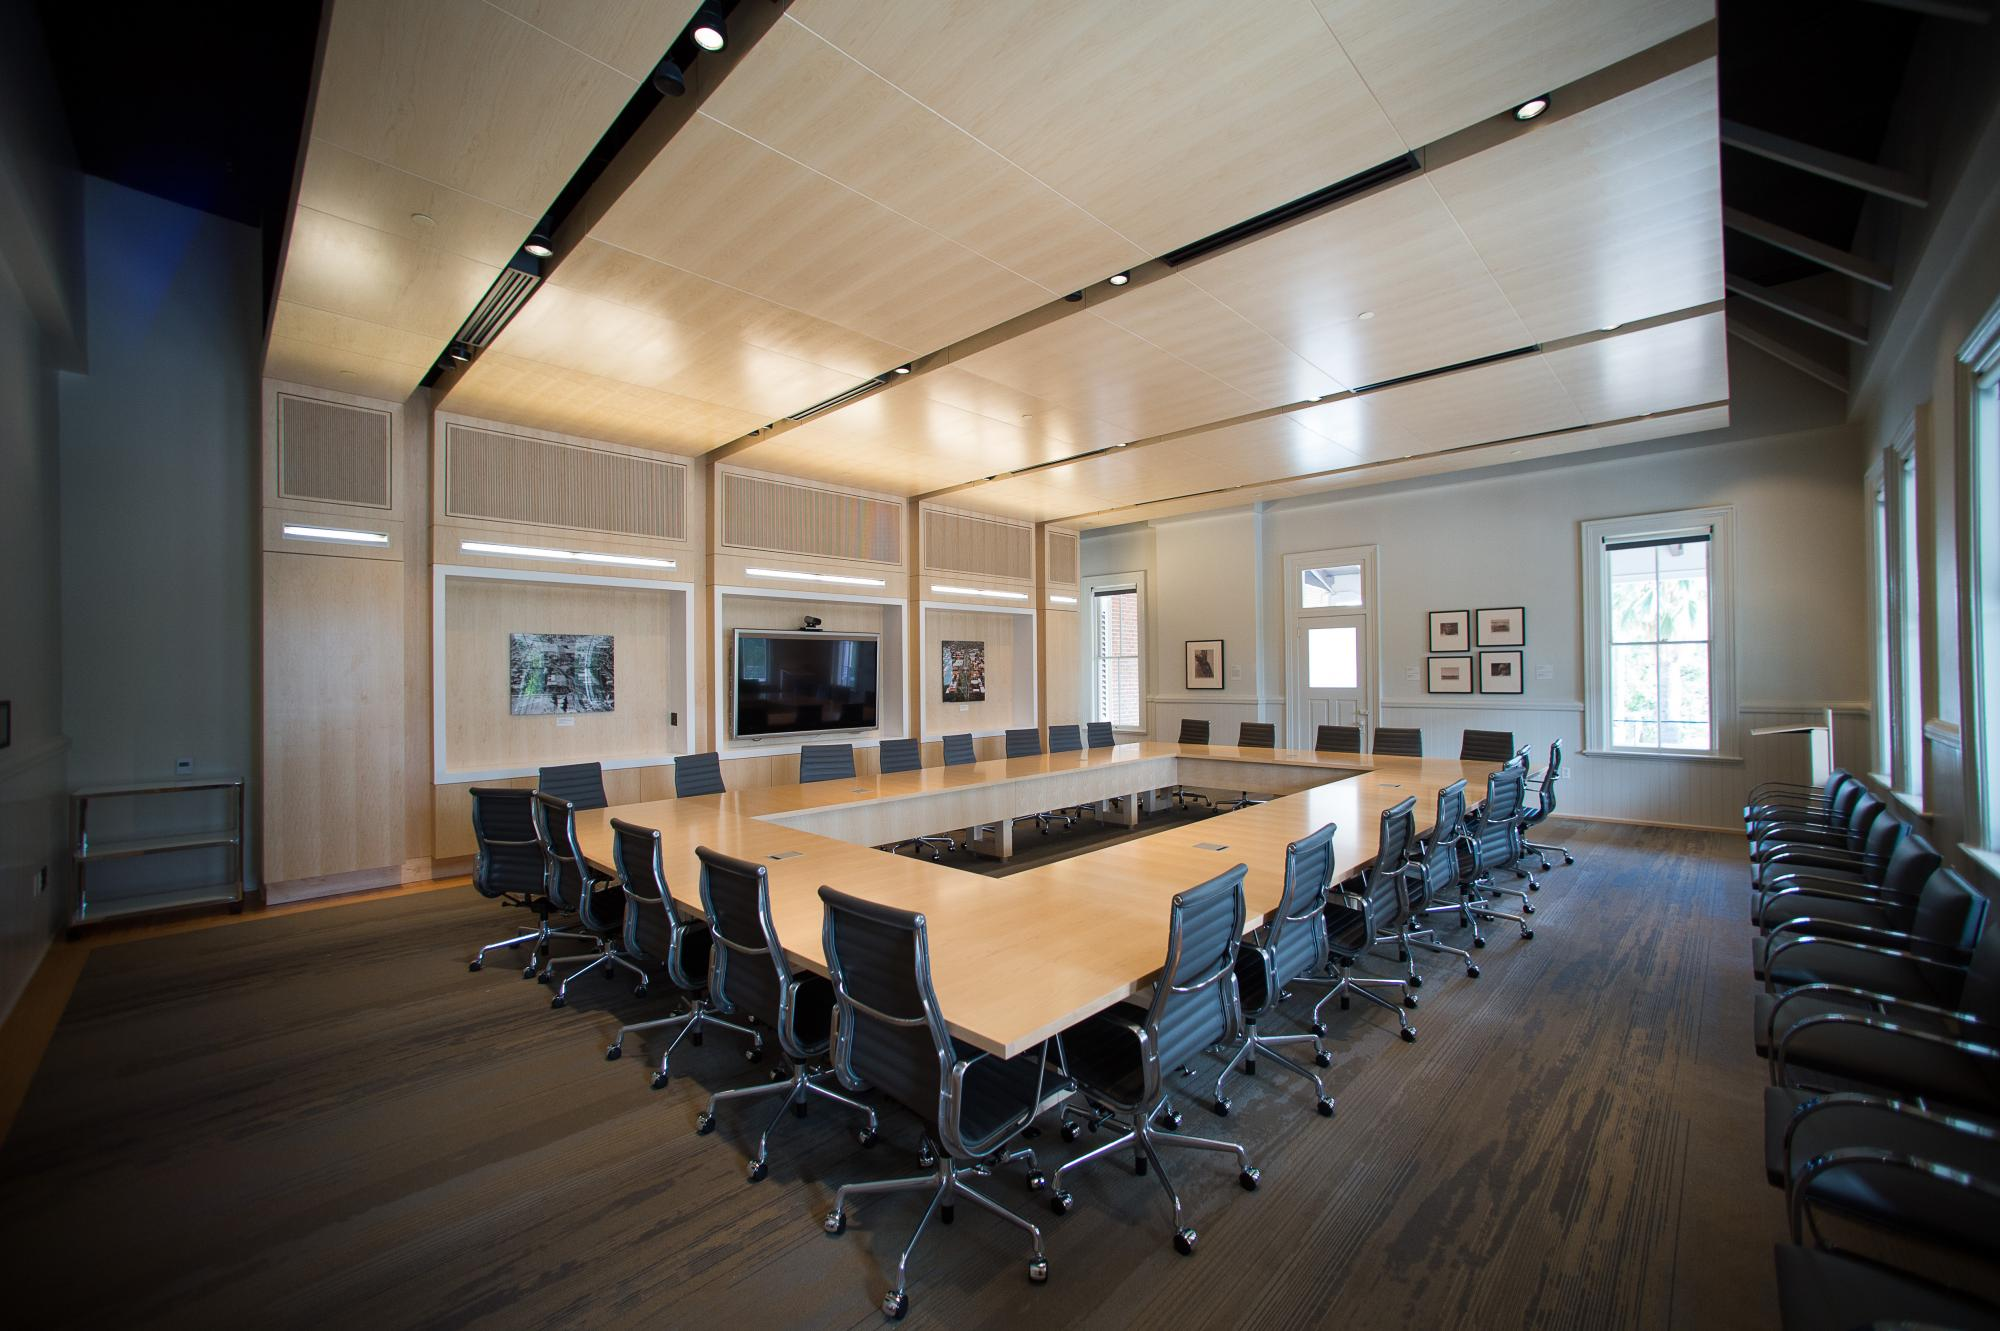 New meeting and conference room spaces have been introduced.